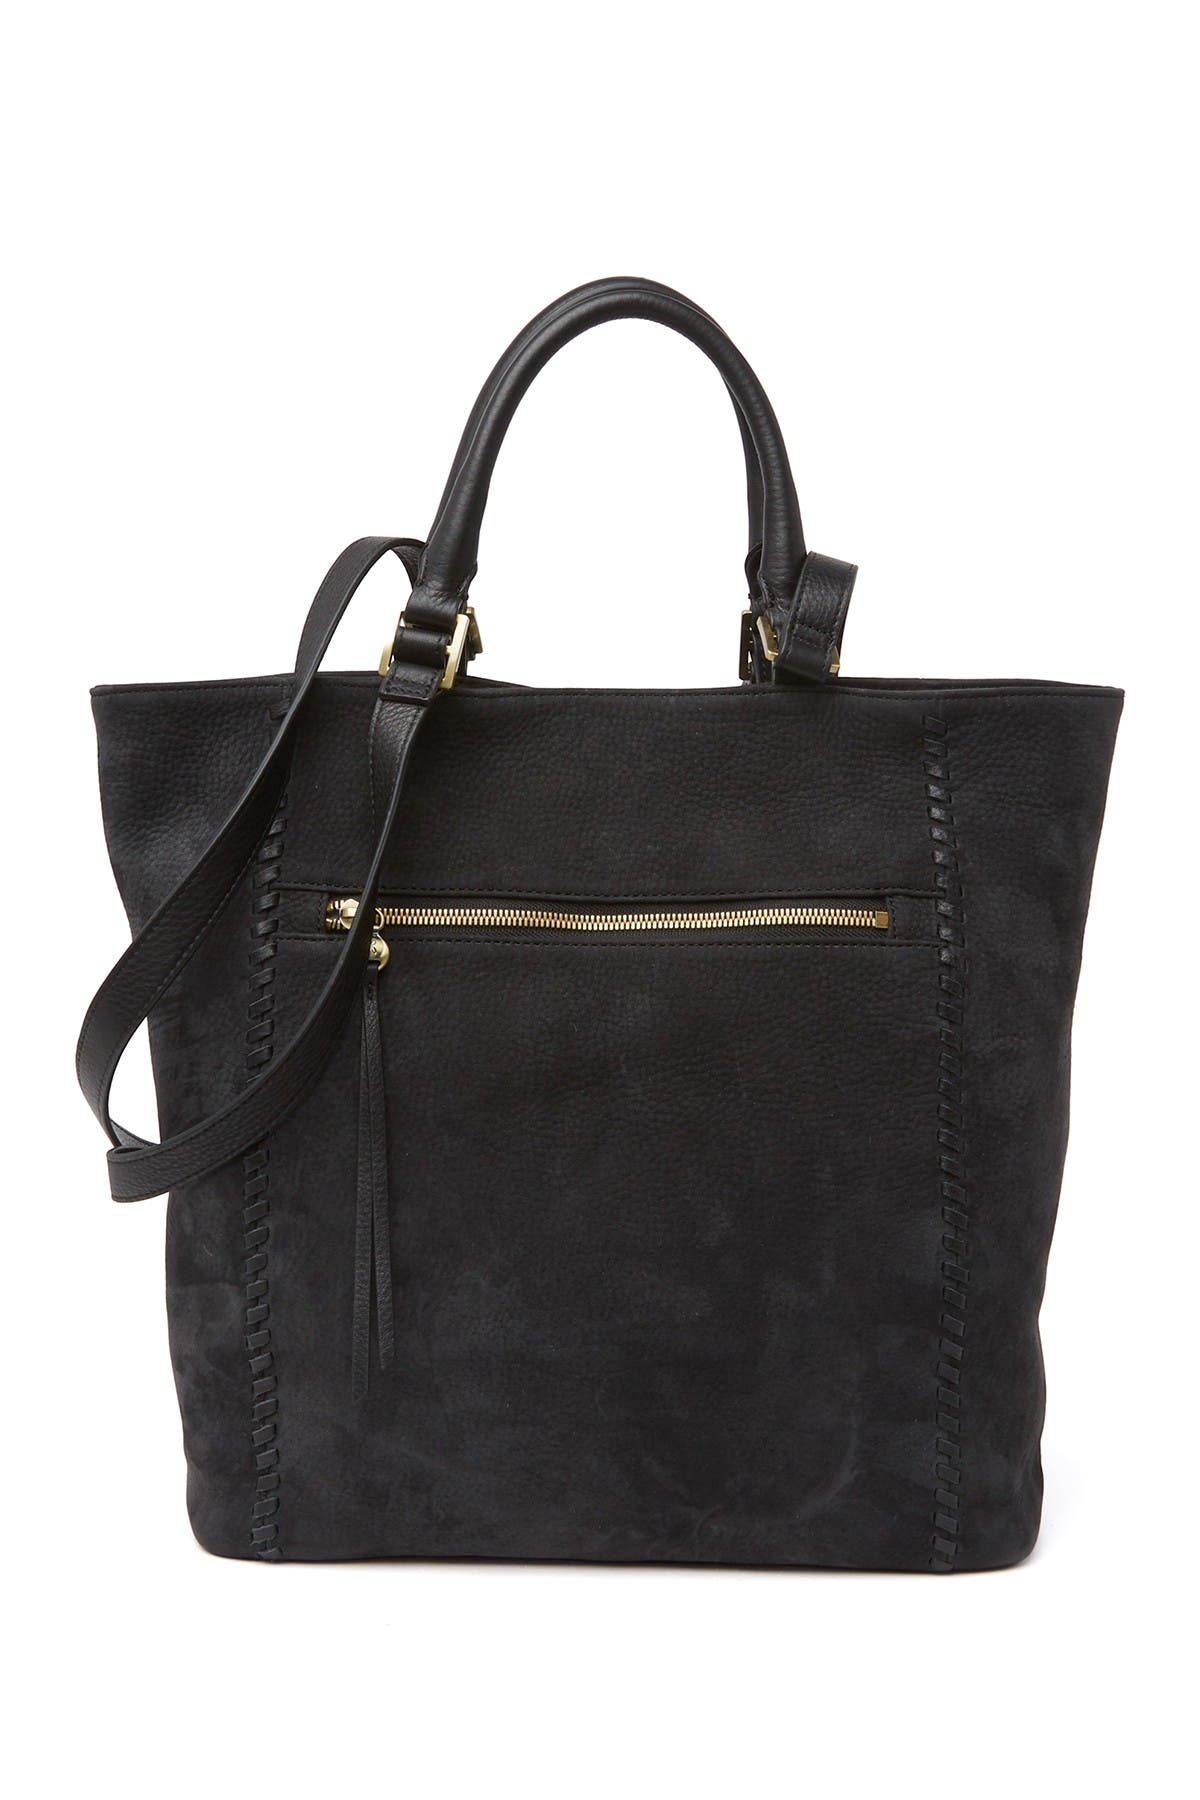 Image of Hobo Ballad Whipstitched Leather Tote Bag